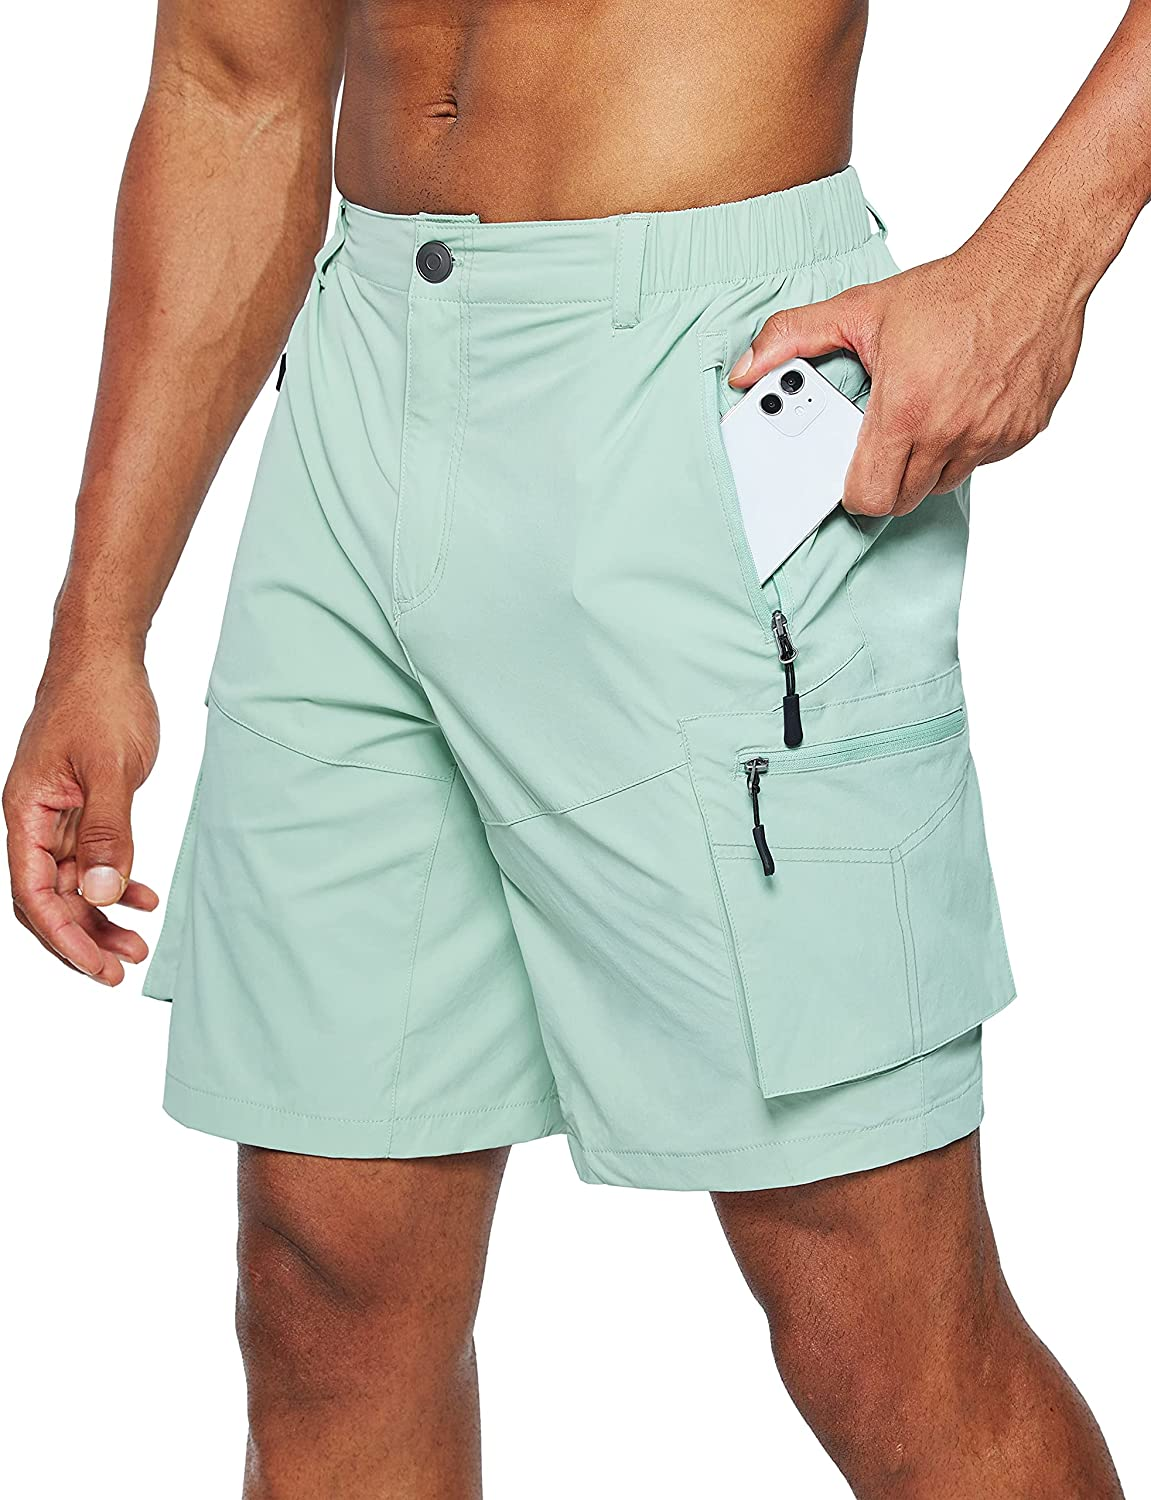 Pudolla Men's Popular products Hiking Arlington Mall Cargo Shorts Quick Dry Short Outdoor Travel